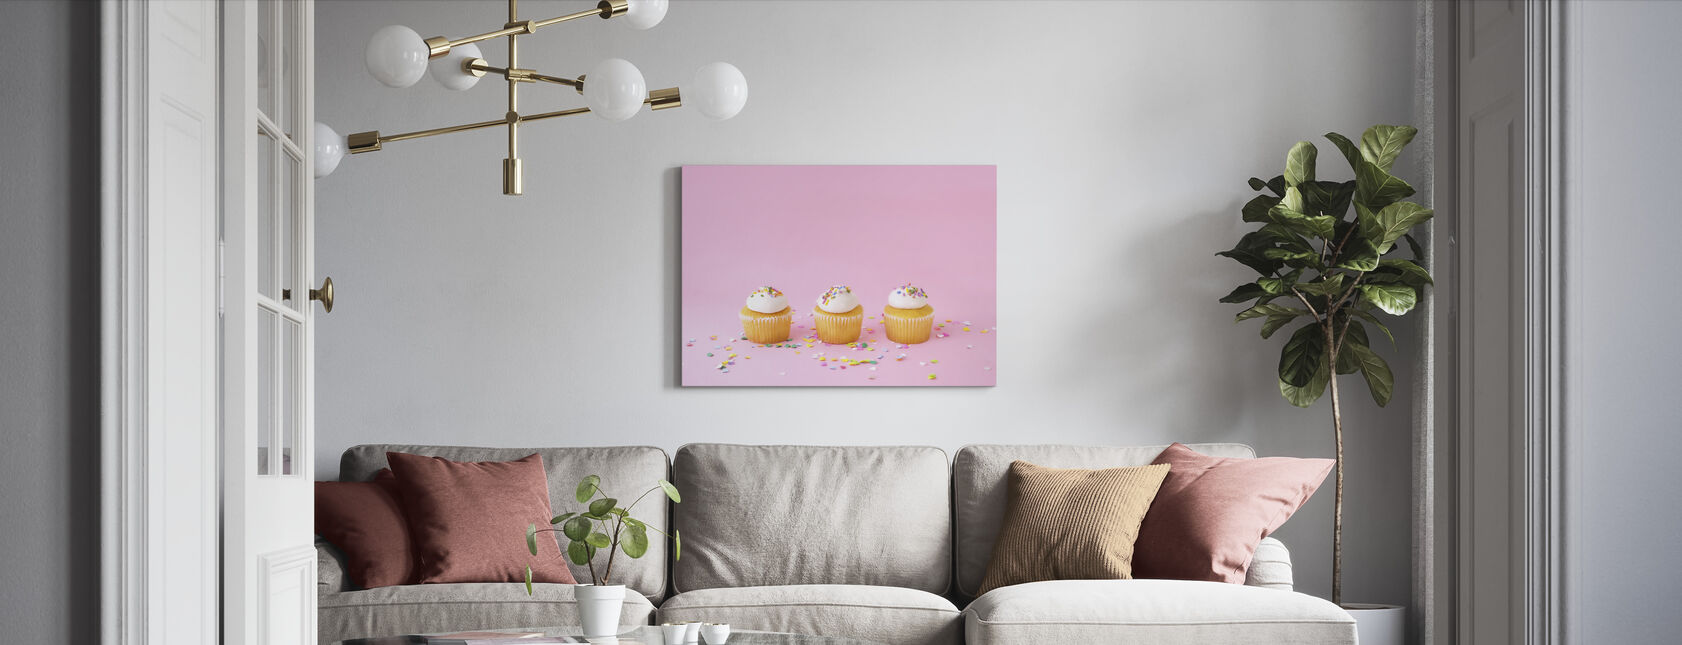 Frosted Cupcakes - Canvas print - Living Room